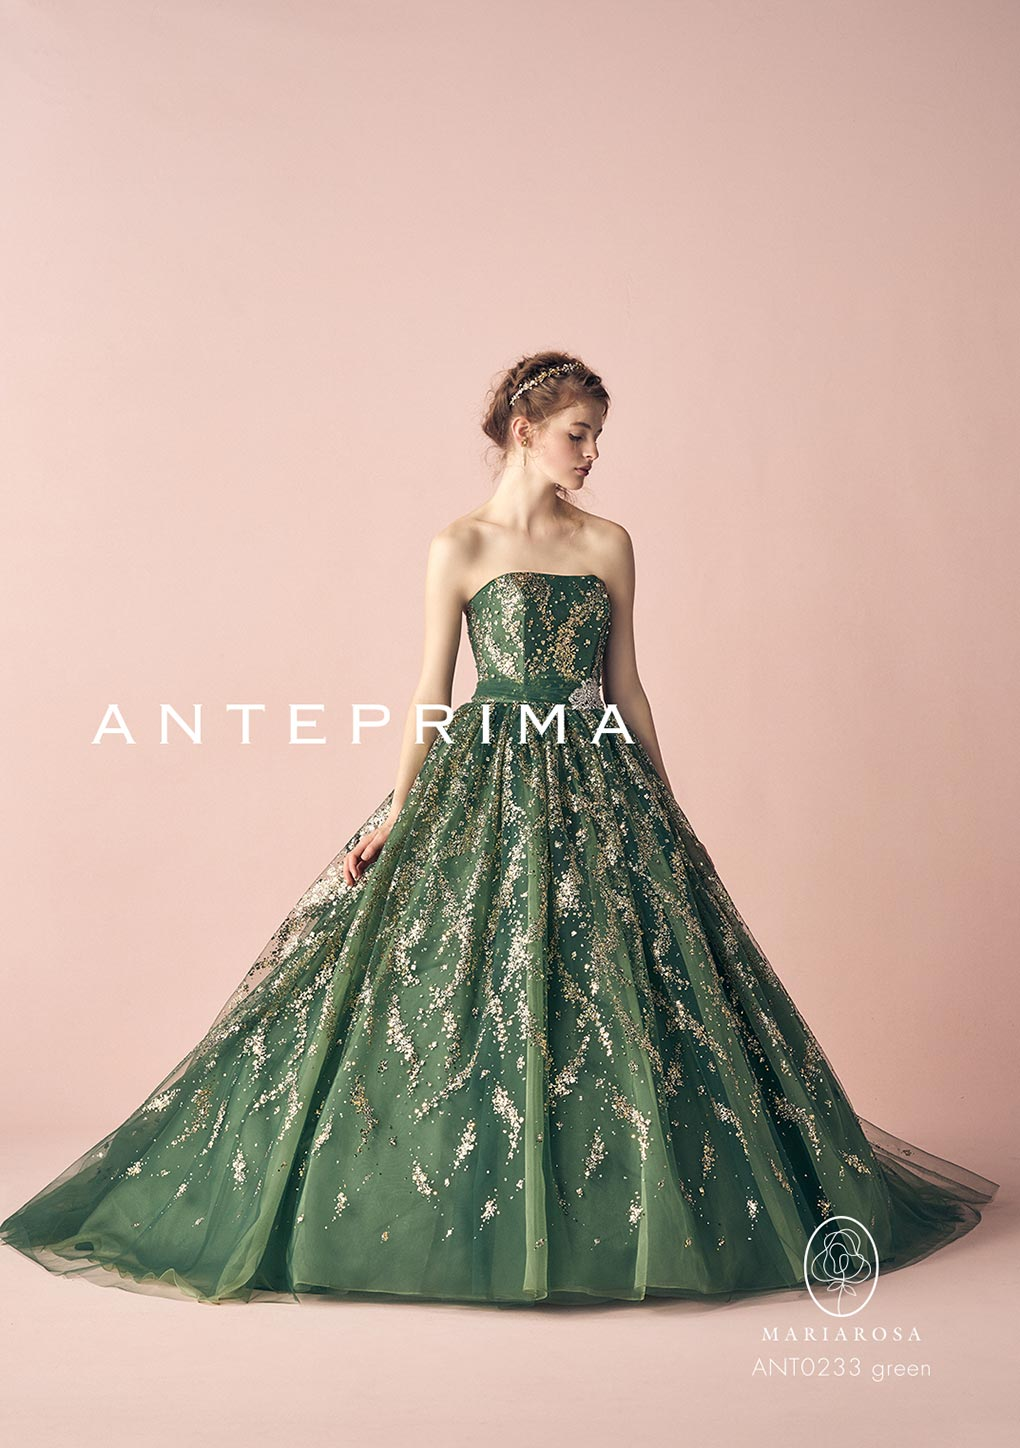 ANT0233_green